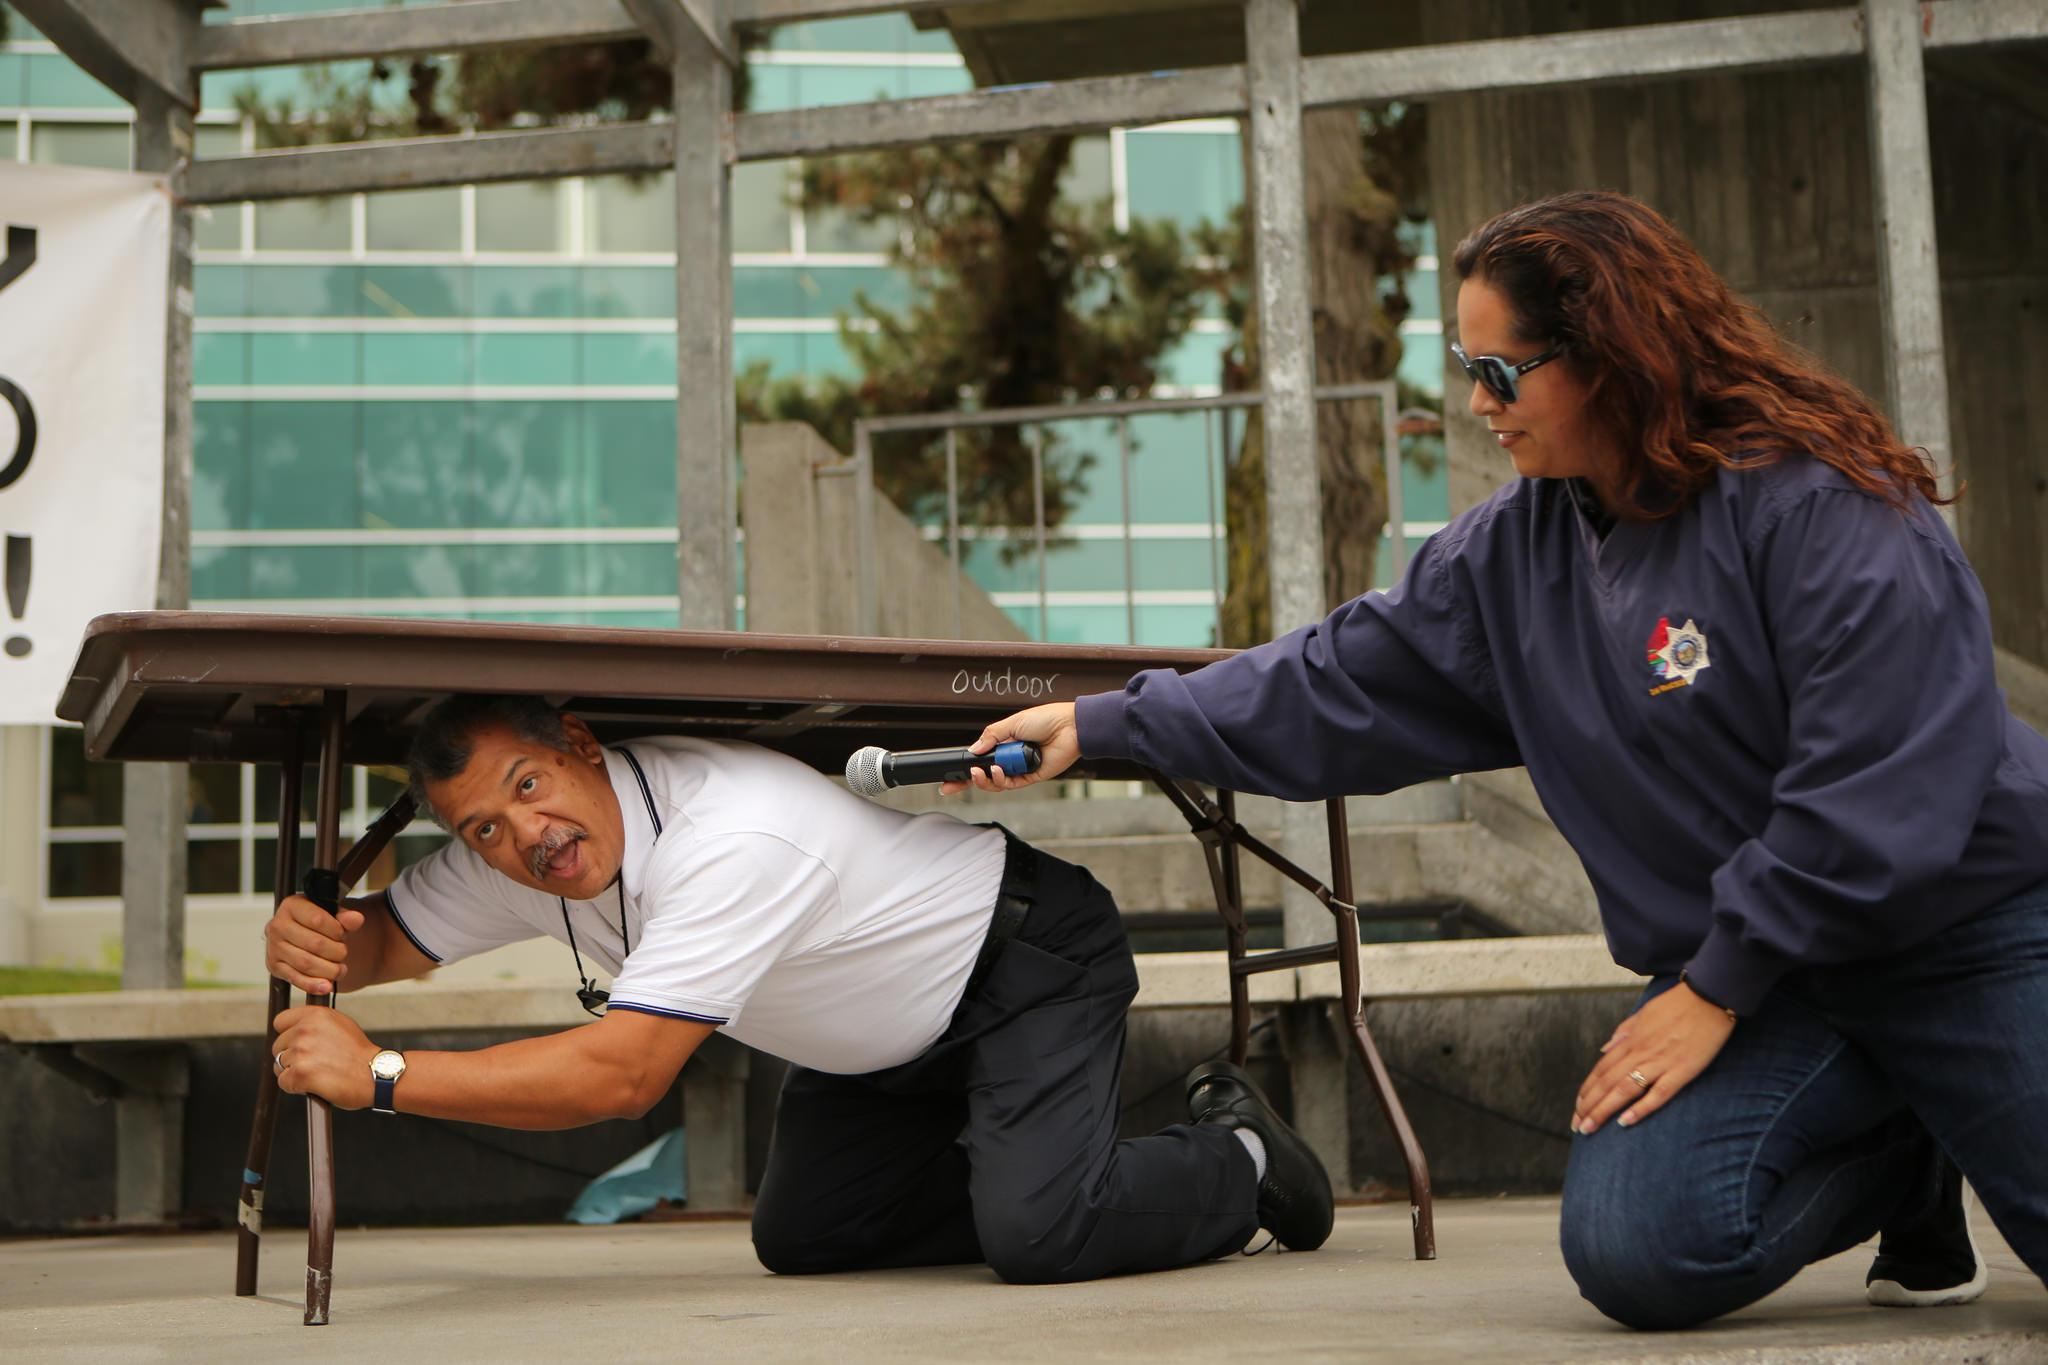 University Police Department (UPD) Sgt. Abe Leal (left) demonstrates earthquake preparedness procedures as UPD Accreditation Manager Martha Villanueva (right) holds a mic during the annual California ShakeOut Earthquake Drill in Malcom X Plaza at SF State on Thursday October 15, 2015. (Photo by Joel Angel Juárez / Xpress)